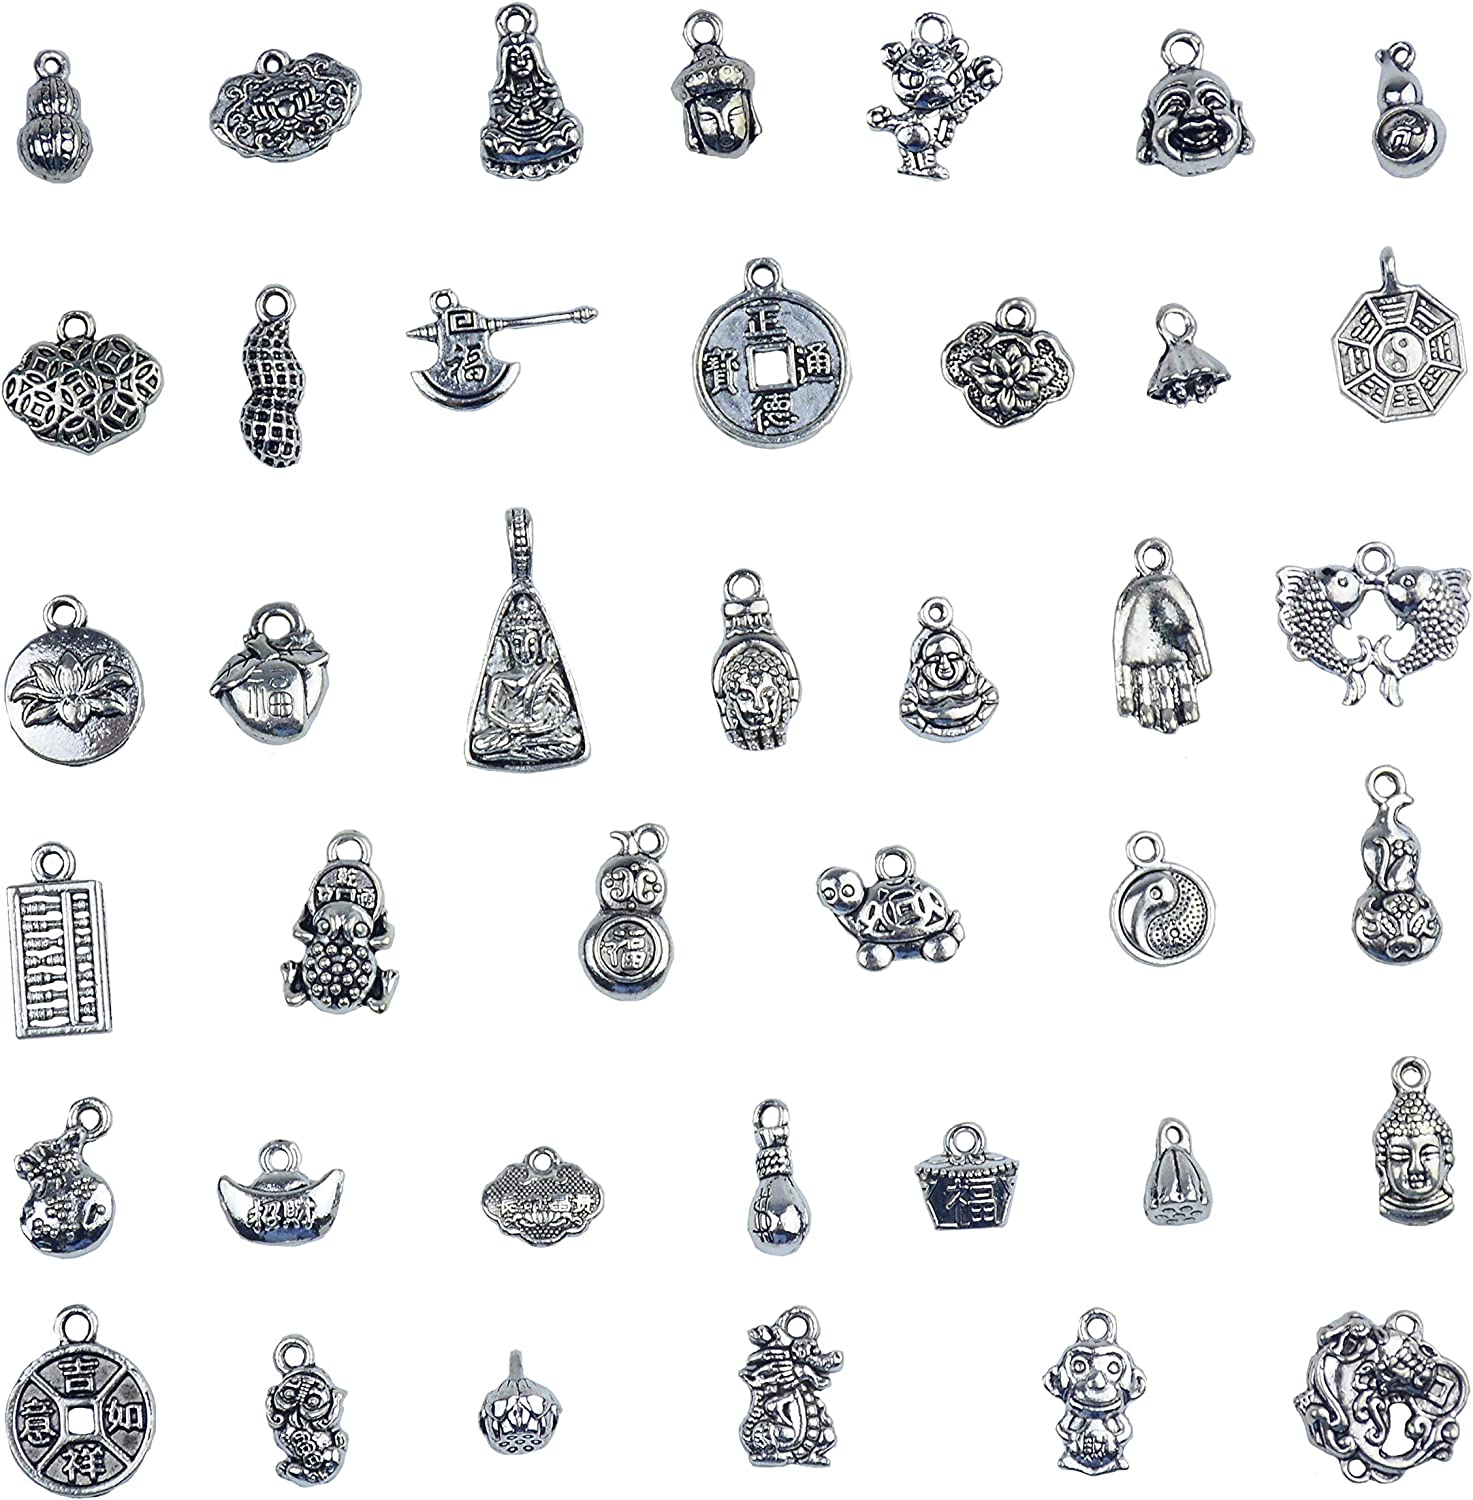 Wholesale 24 pcs Assorted Vintage Alloy Buddha Head Beads Charms Pendant Crafts